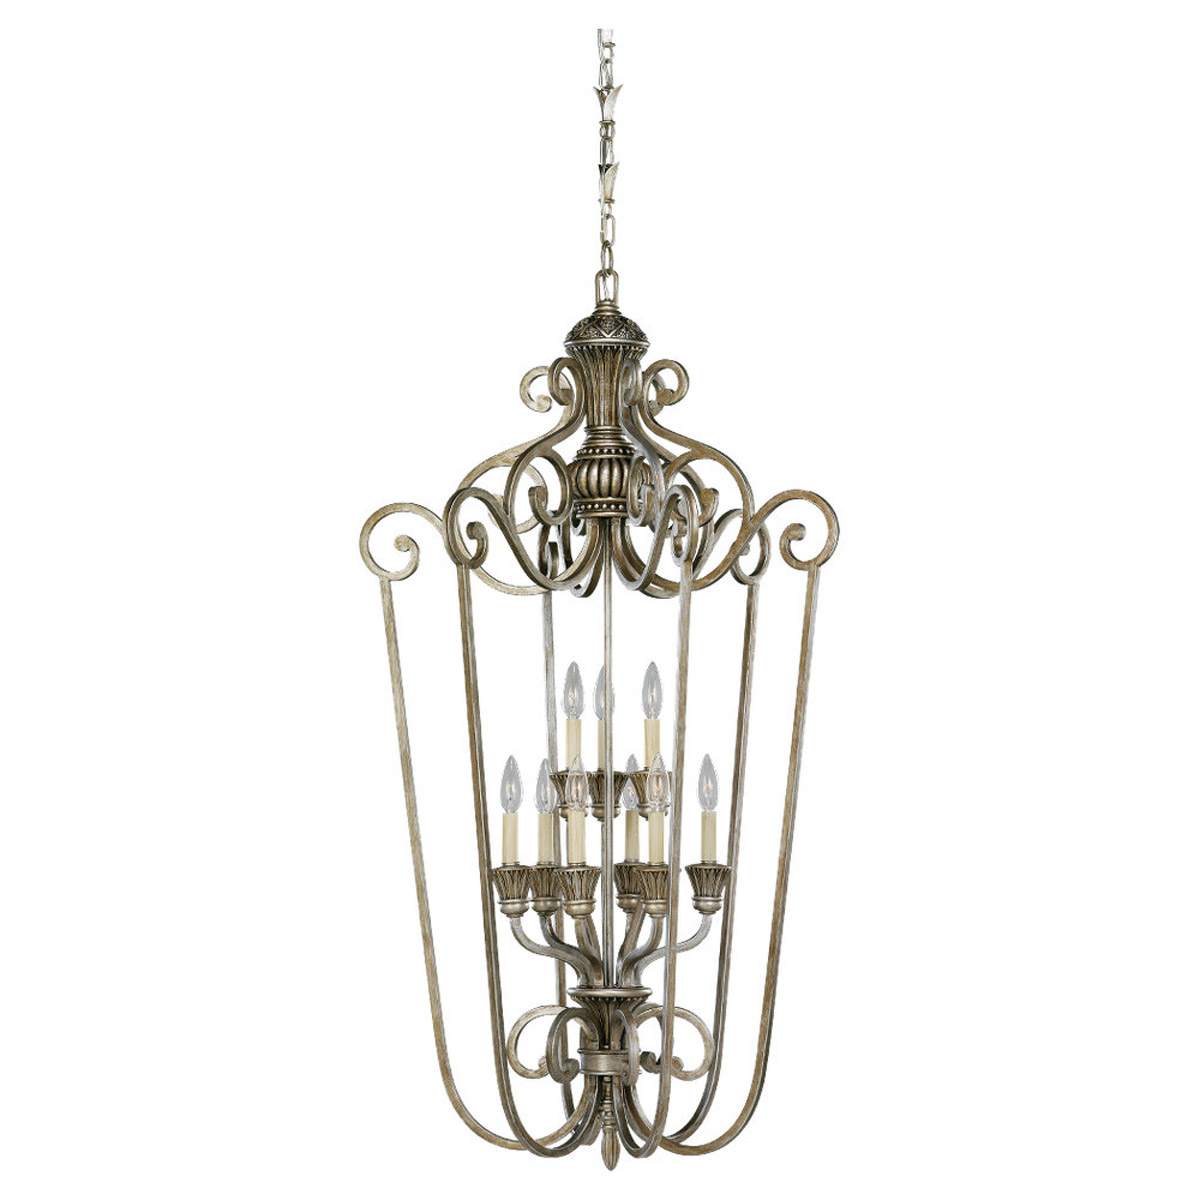 Sea Gull Lighting Highlands 9 Light Foyer Pendant in Palladium 51257-824